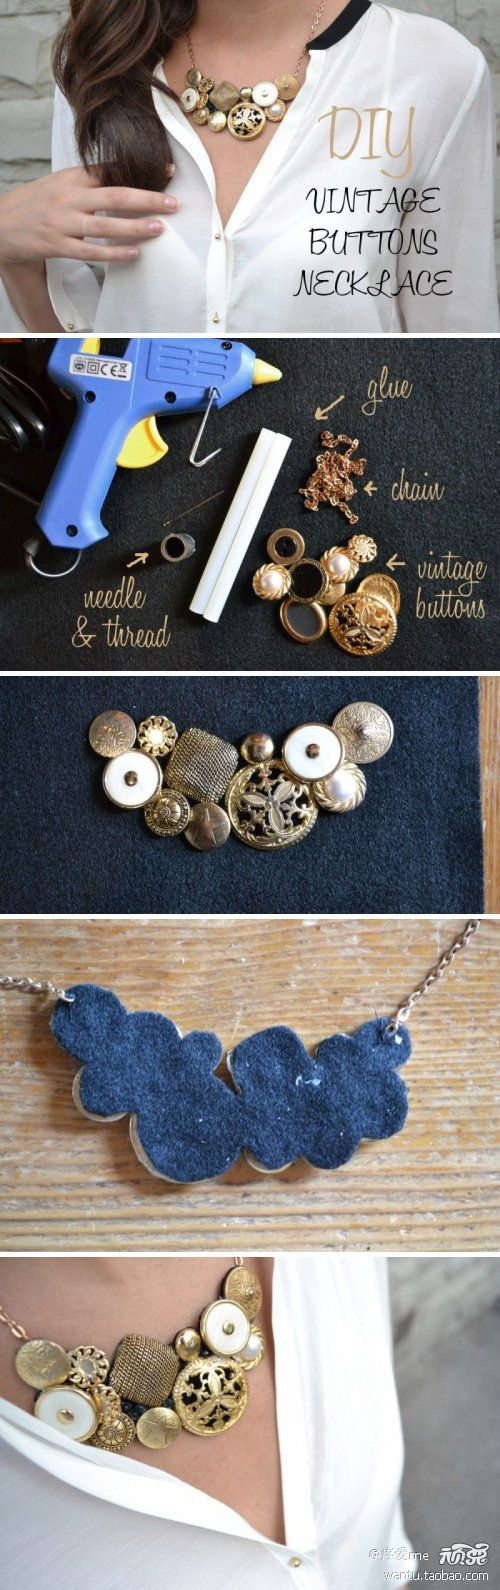 11 Easy DIY Buttons Jewelry Projects Making